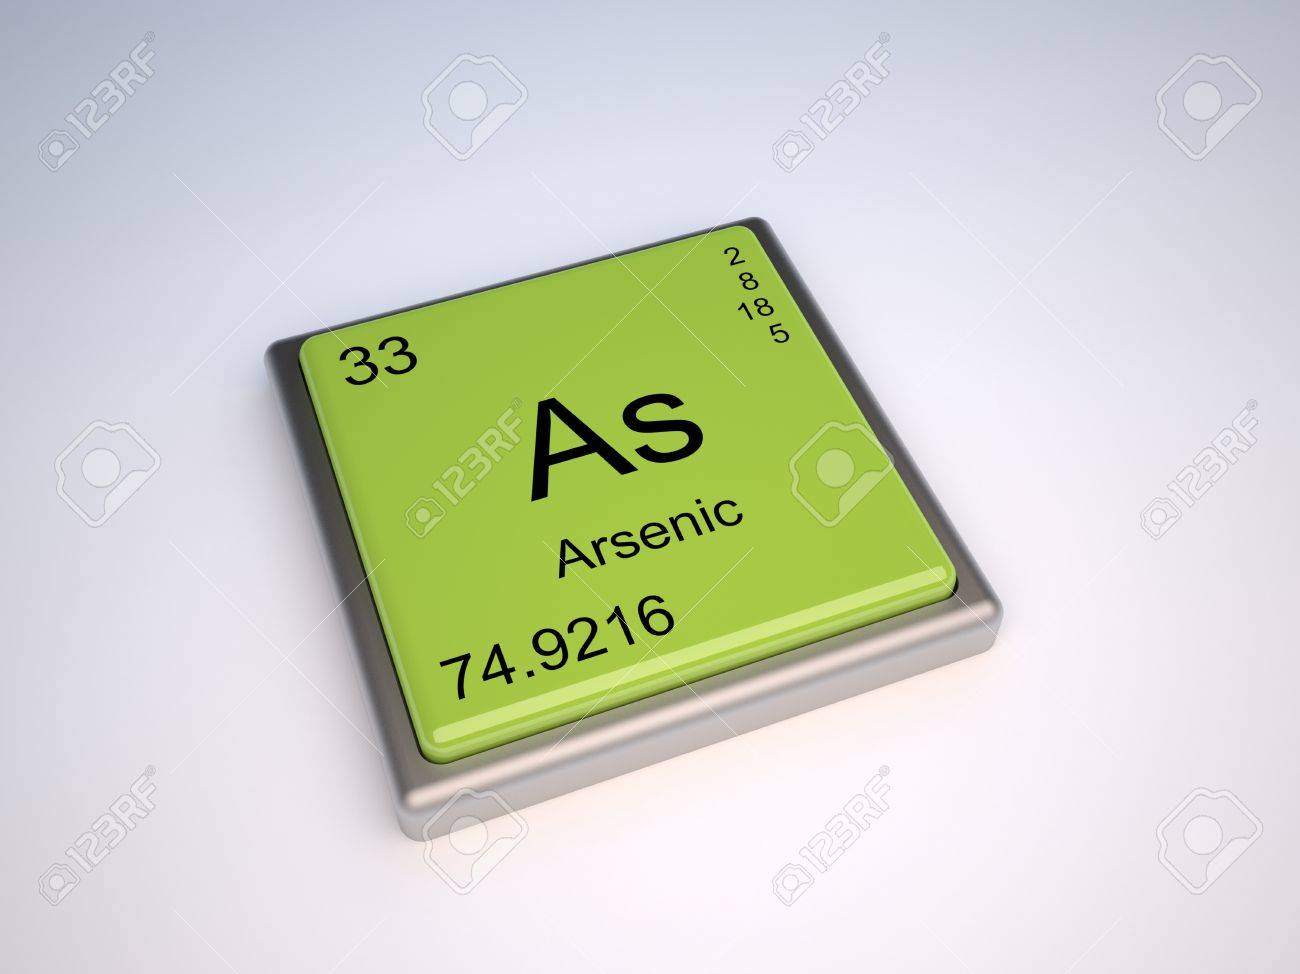 Arsenic chemical element of the periodic table with symbol as arsenic chemical element of the periodic table with symbol as stock photo 9257138 biocorpaavc Image collections